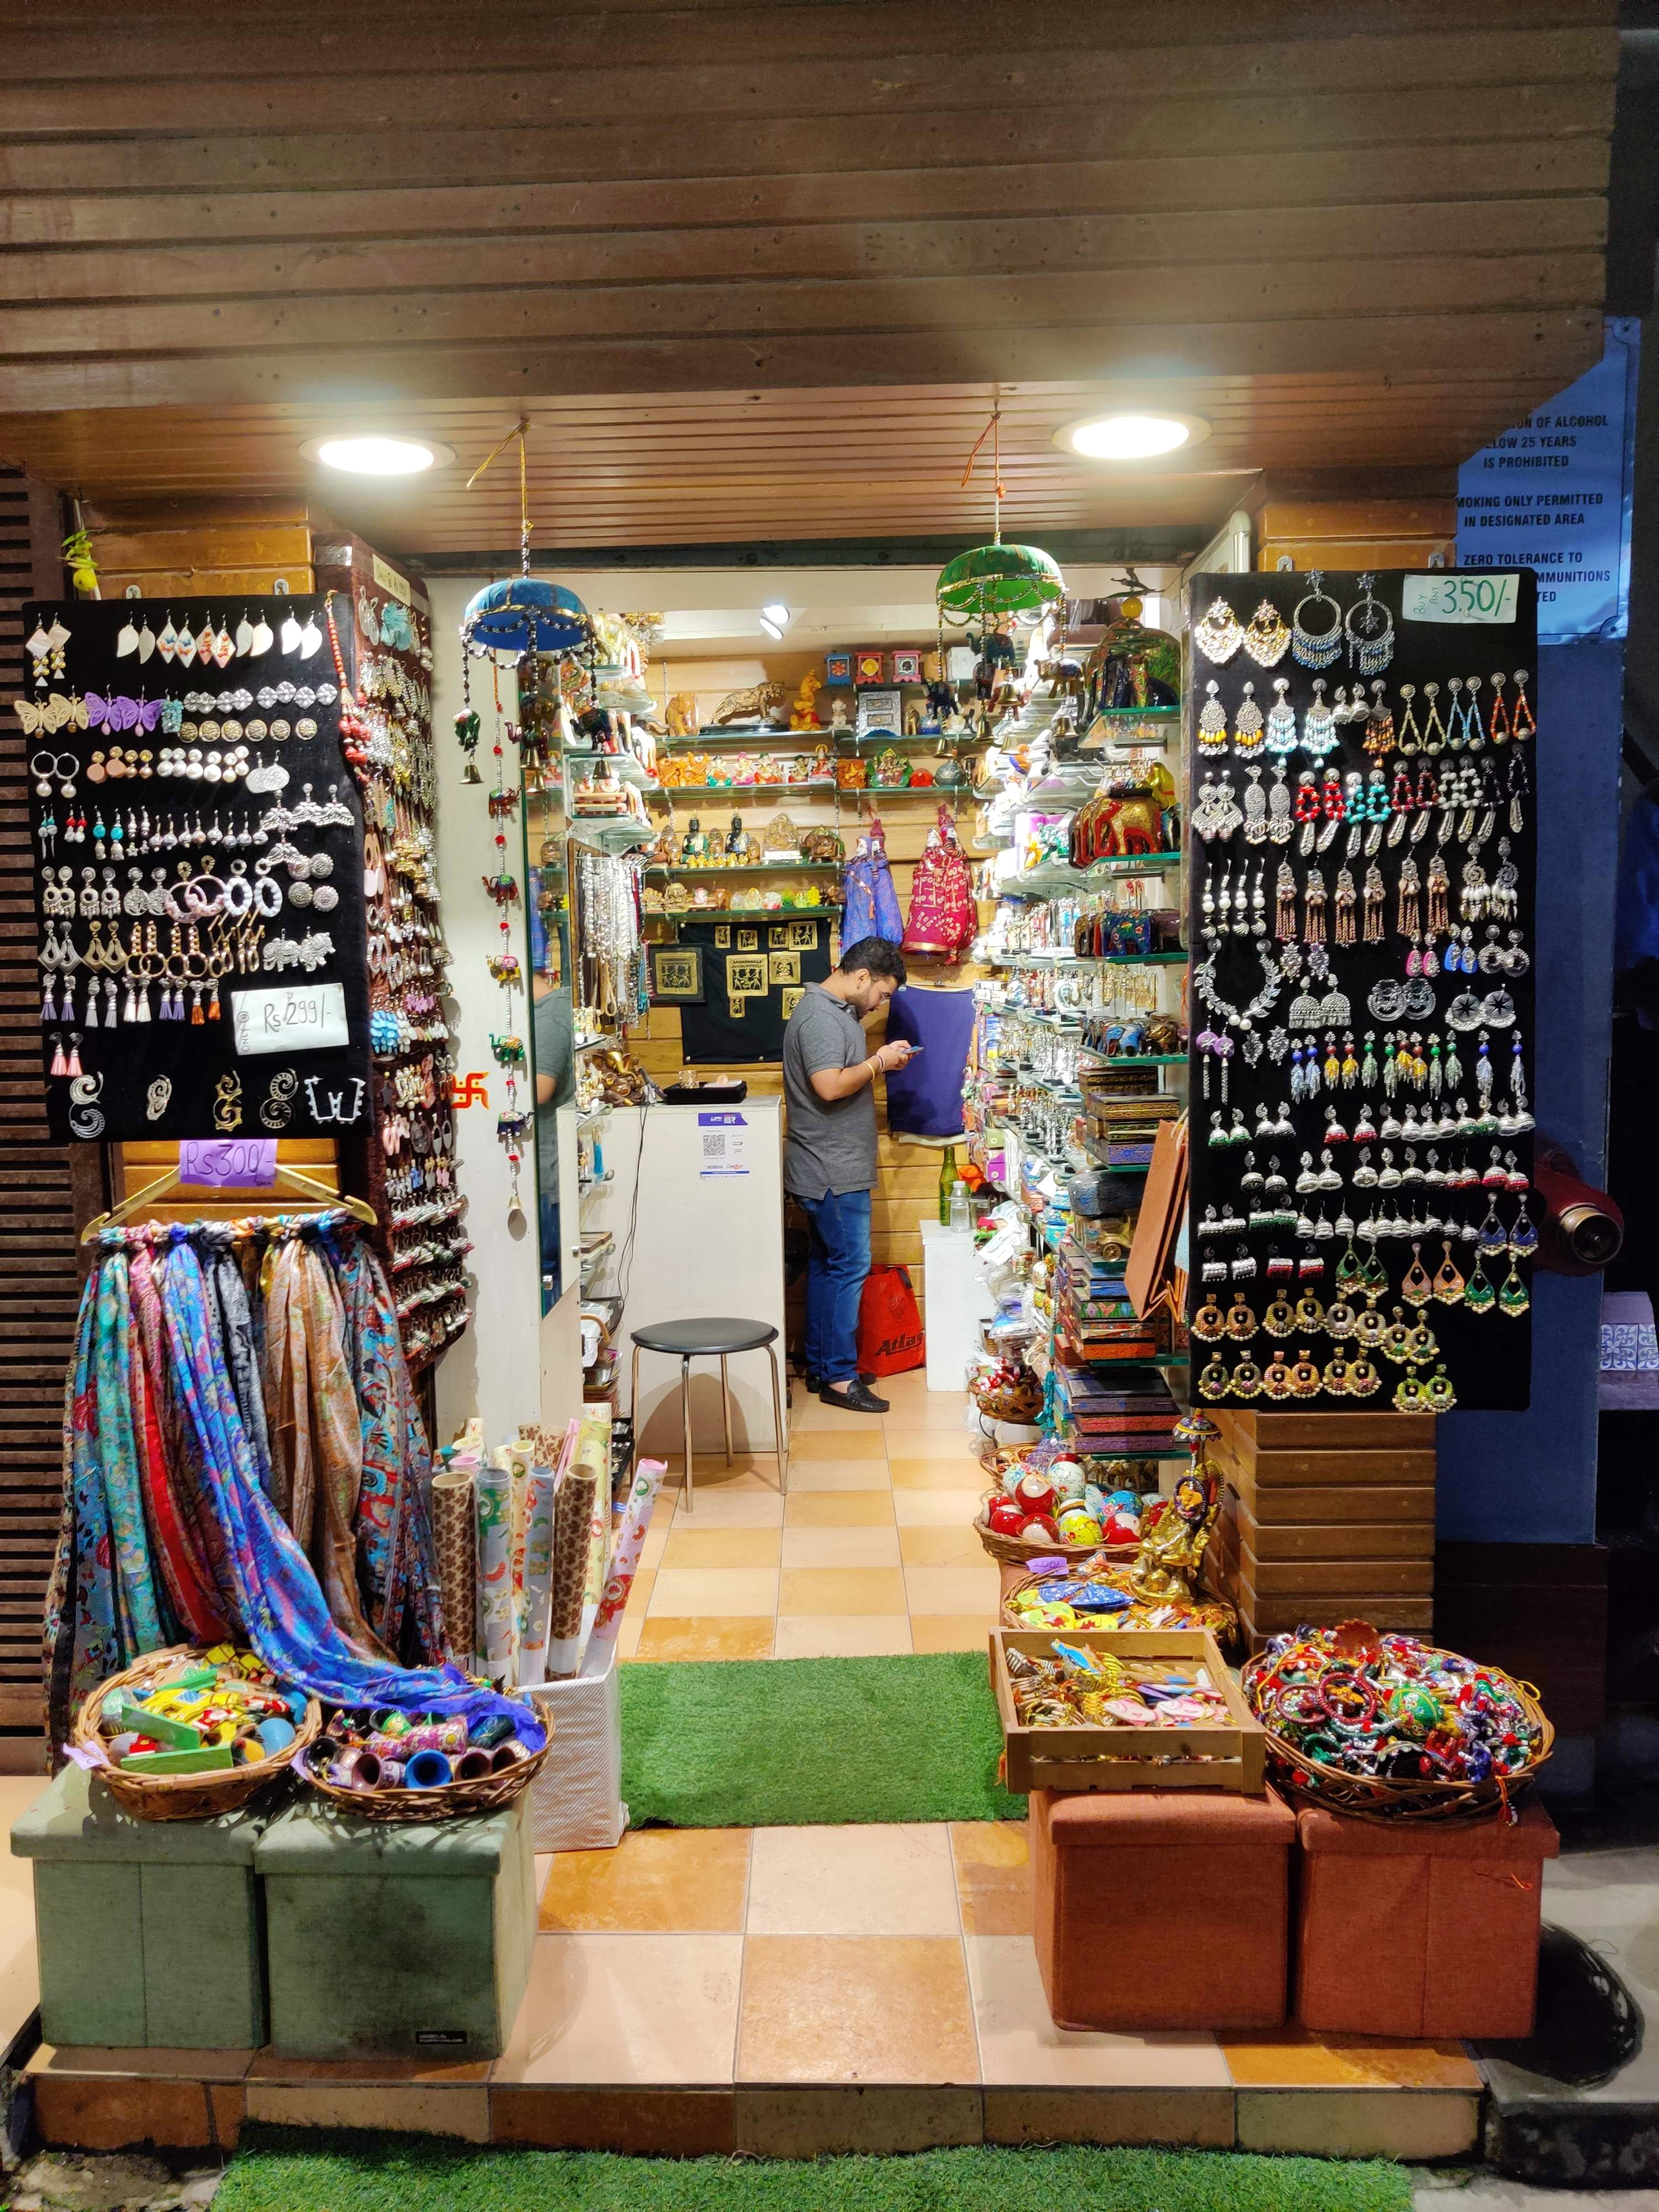 Retail,Outlet store,Building,Bazaar,Marketplace,Selling,Market,Aisle,Trade,Collection